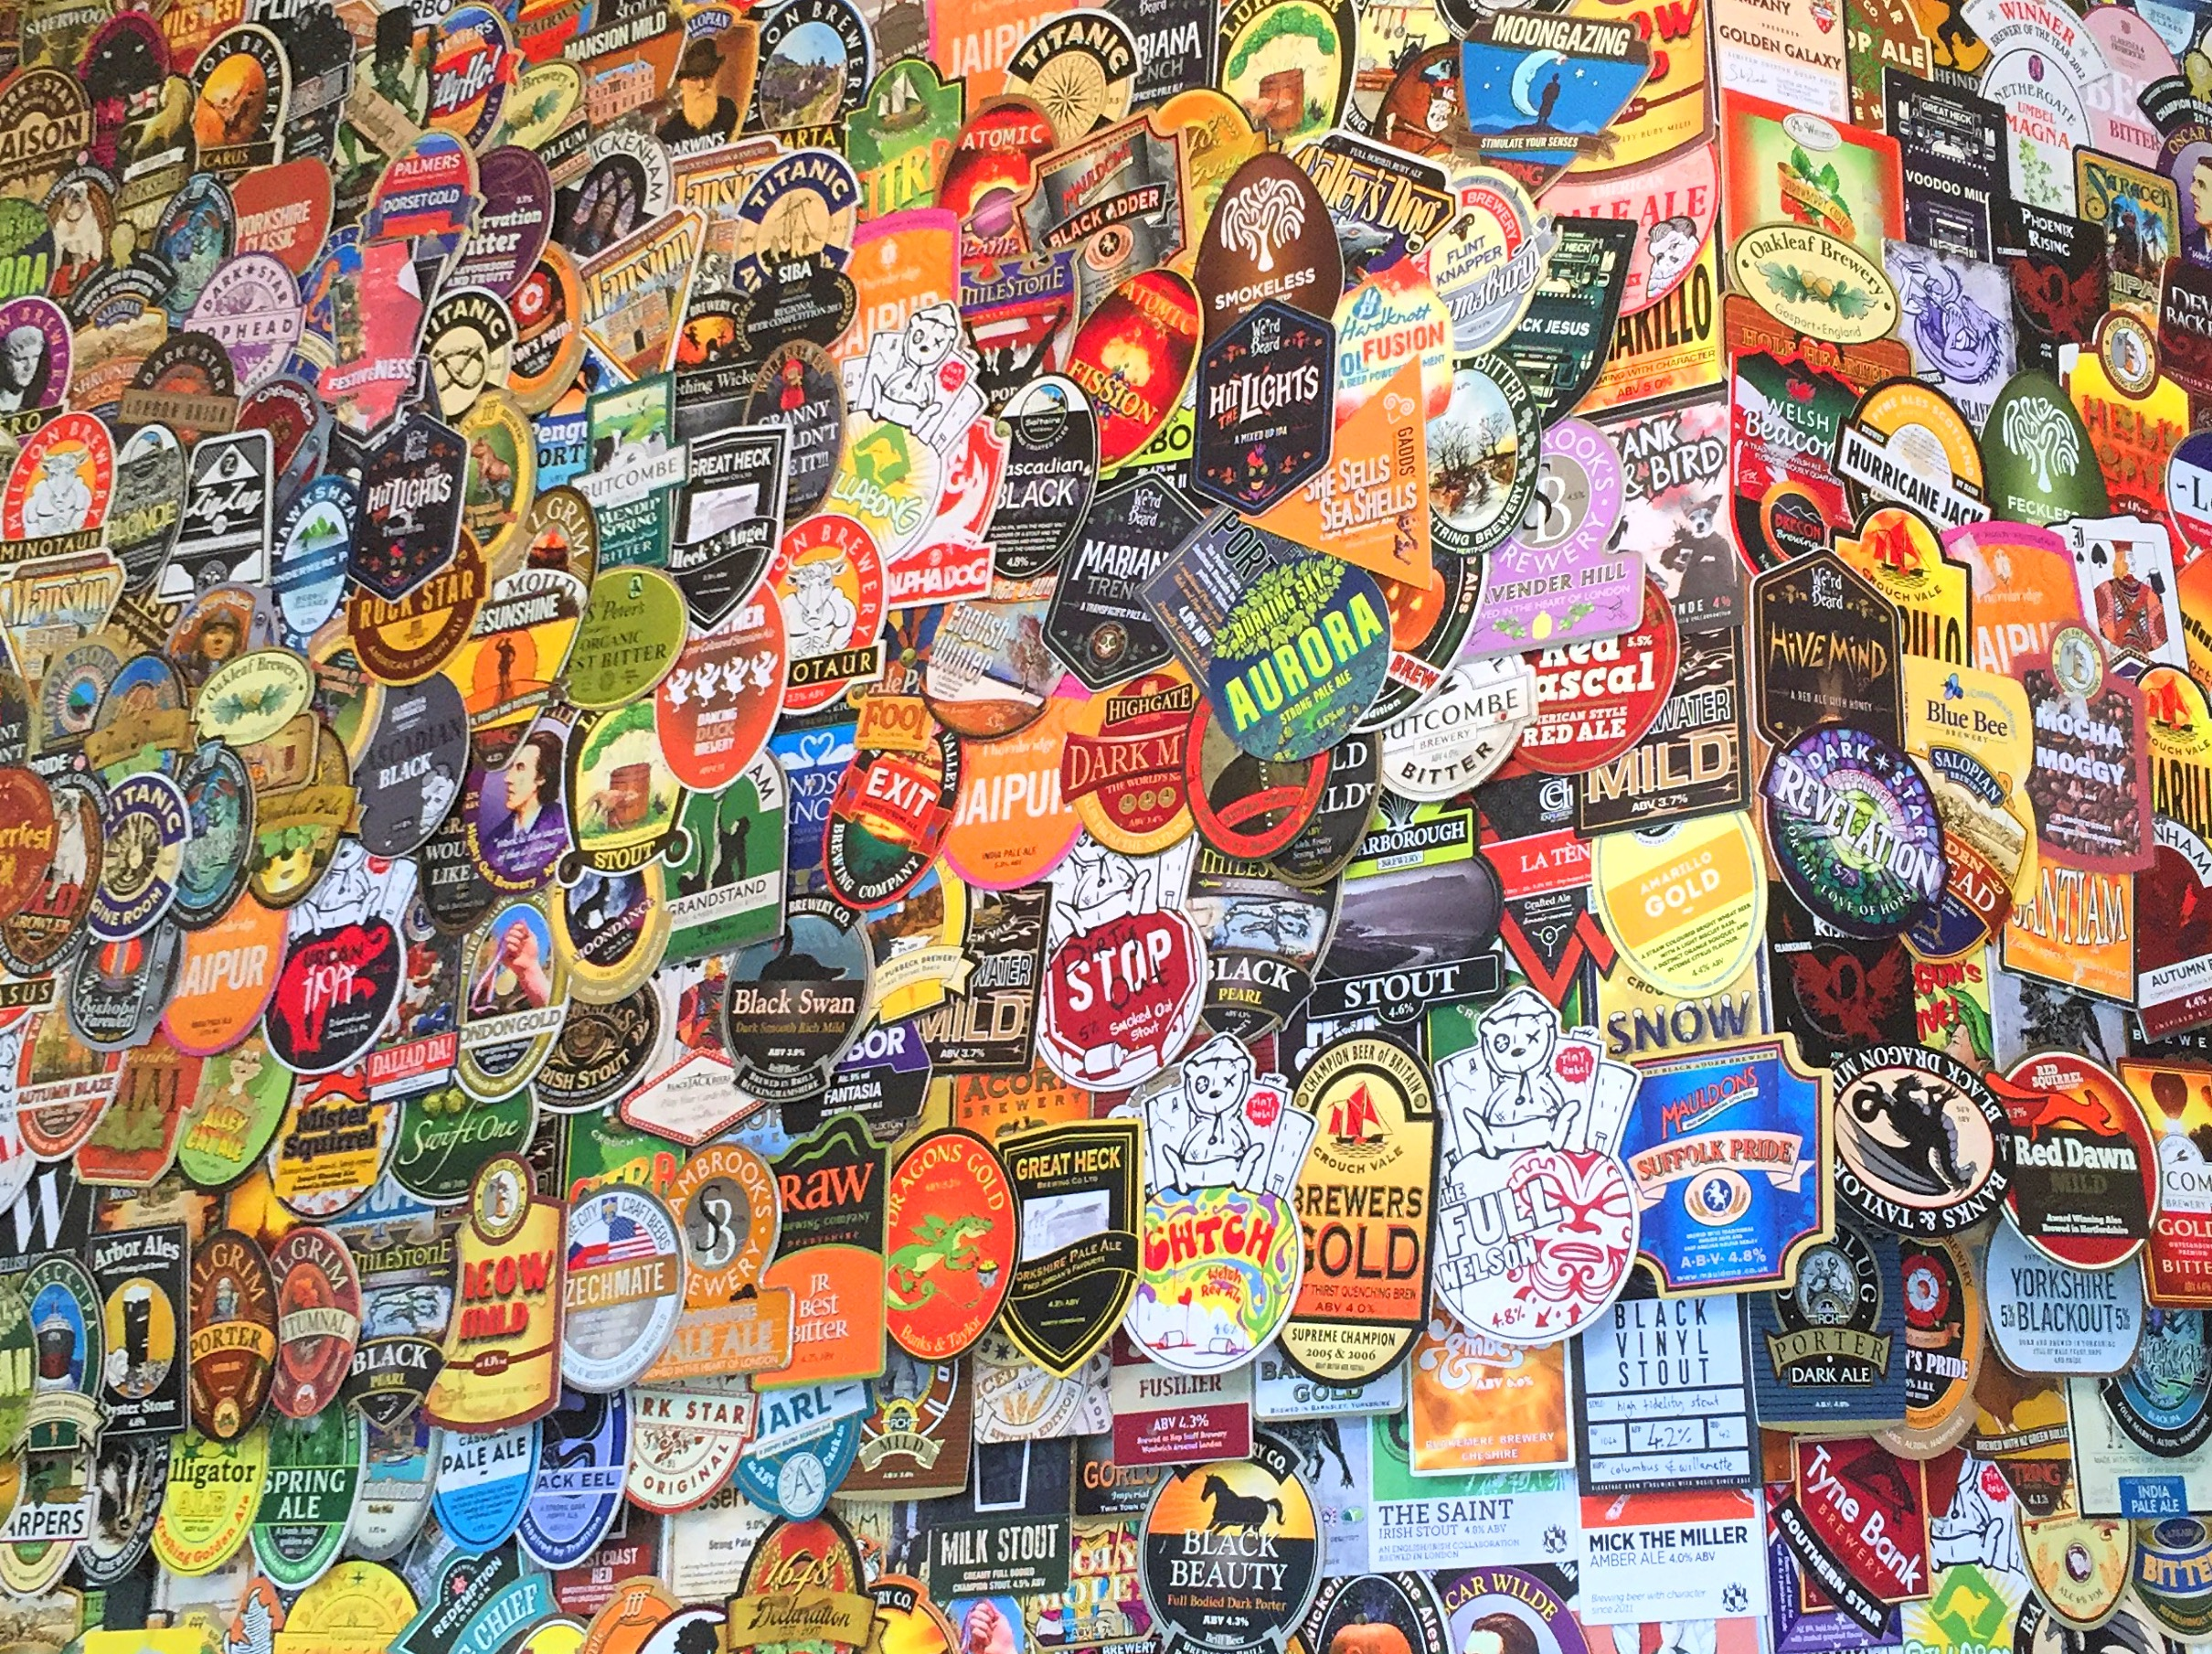 Collection of beer mats inside the Harp, Covent Garden